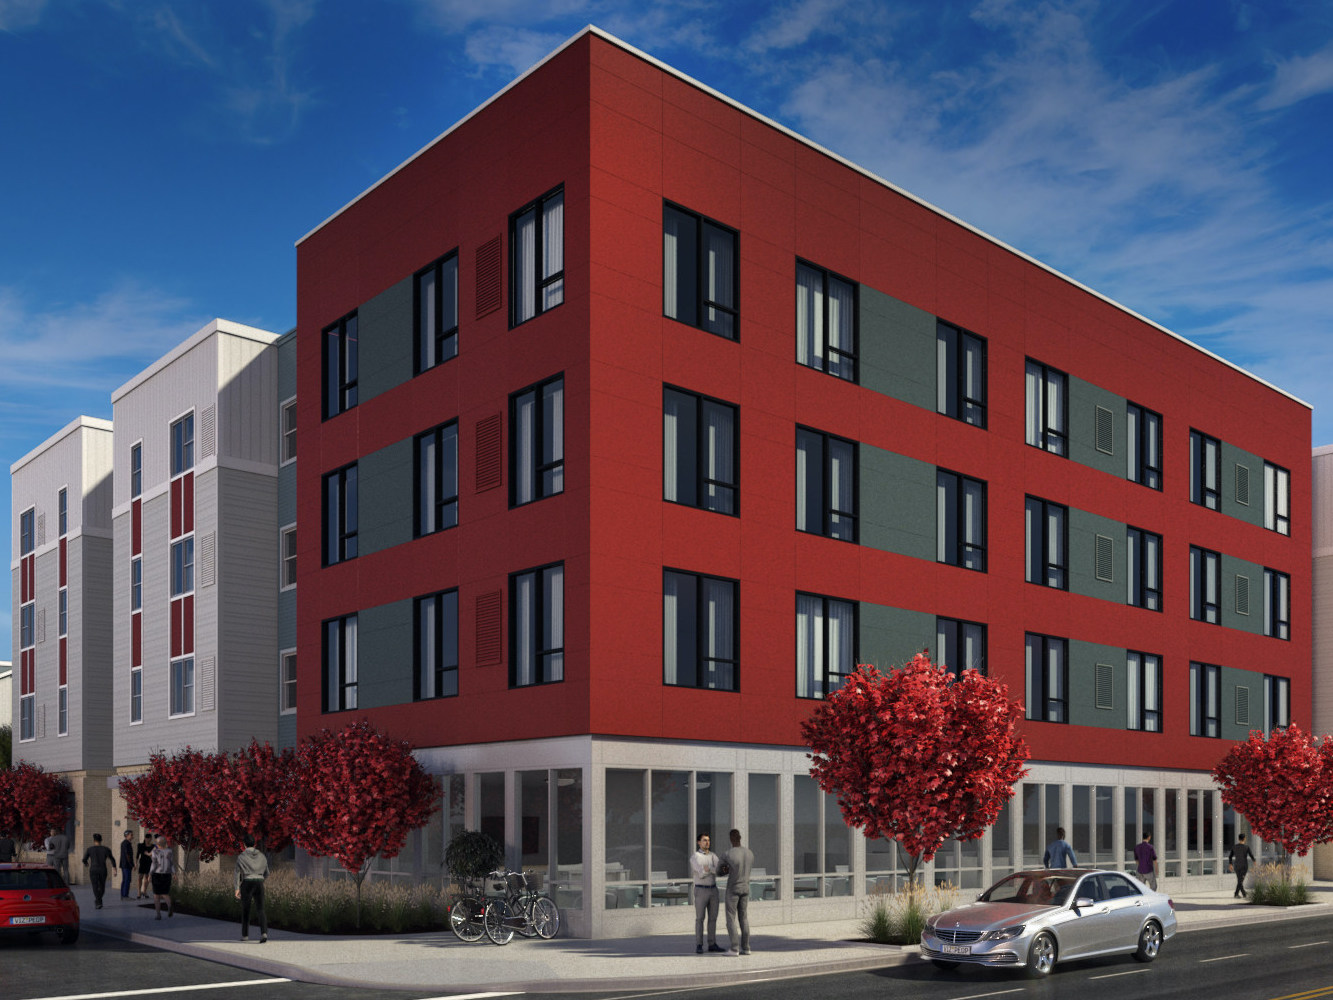 The NRP Group Breaks Ground on Mixed-Use Residential Community in Cleveland's Broadway-Slavic Village Neighborhood